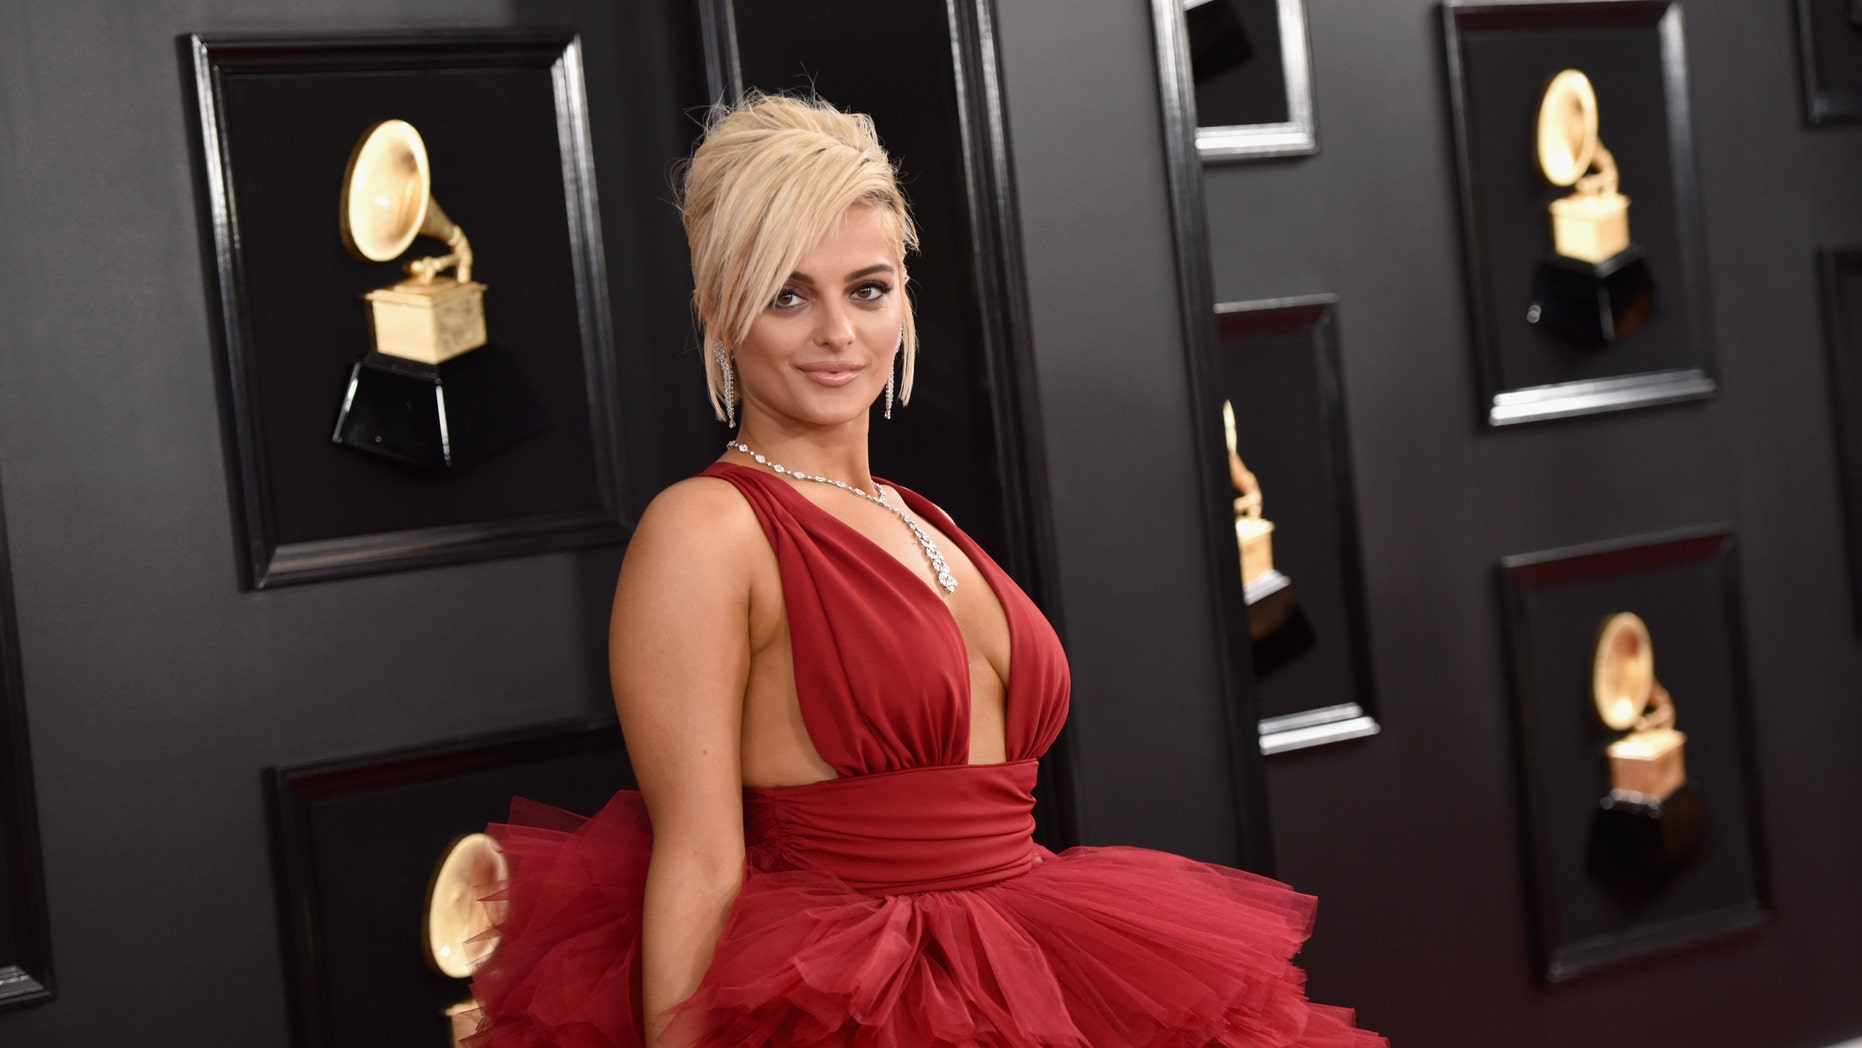 Bebe Rexha Stuns In Monsoori Dress At 2019 Grammys: See The Look